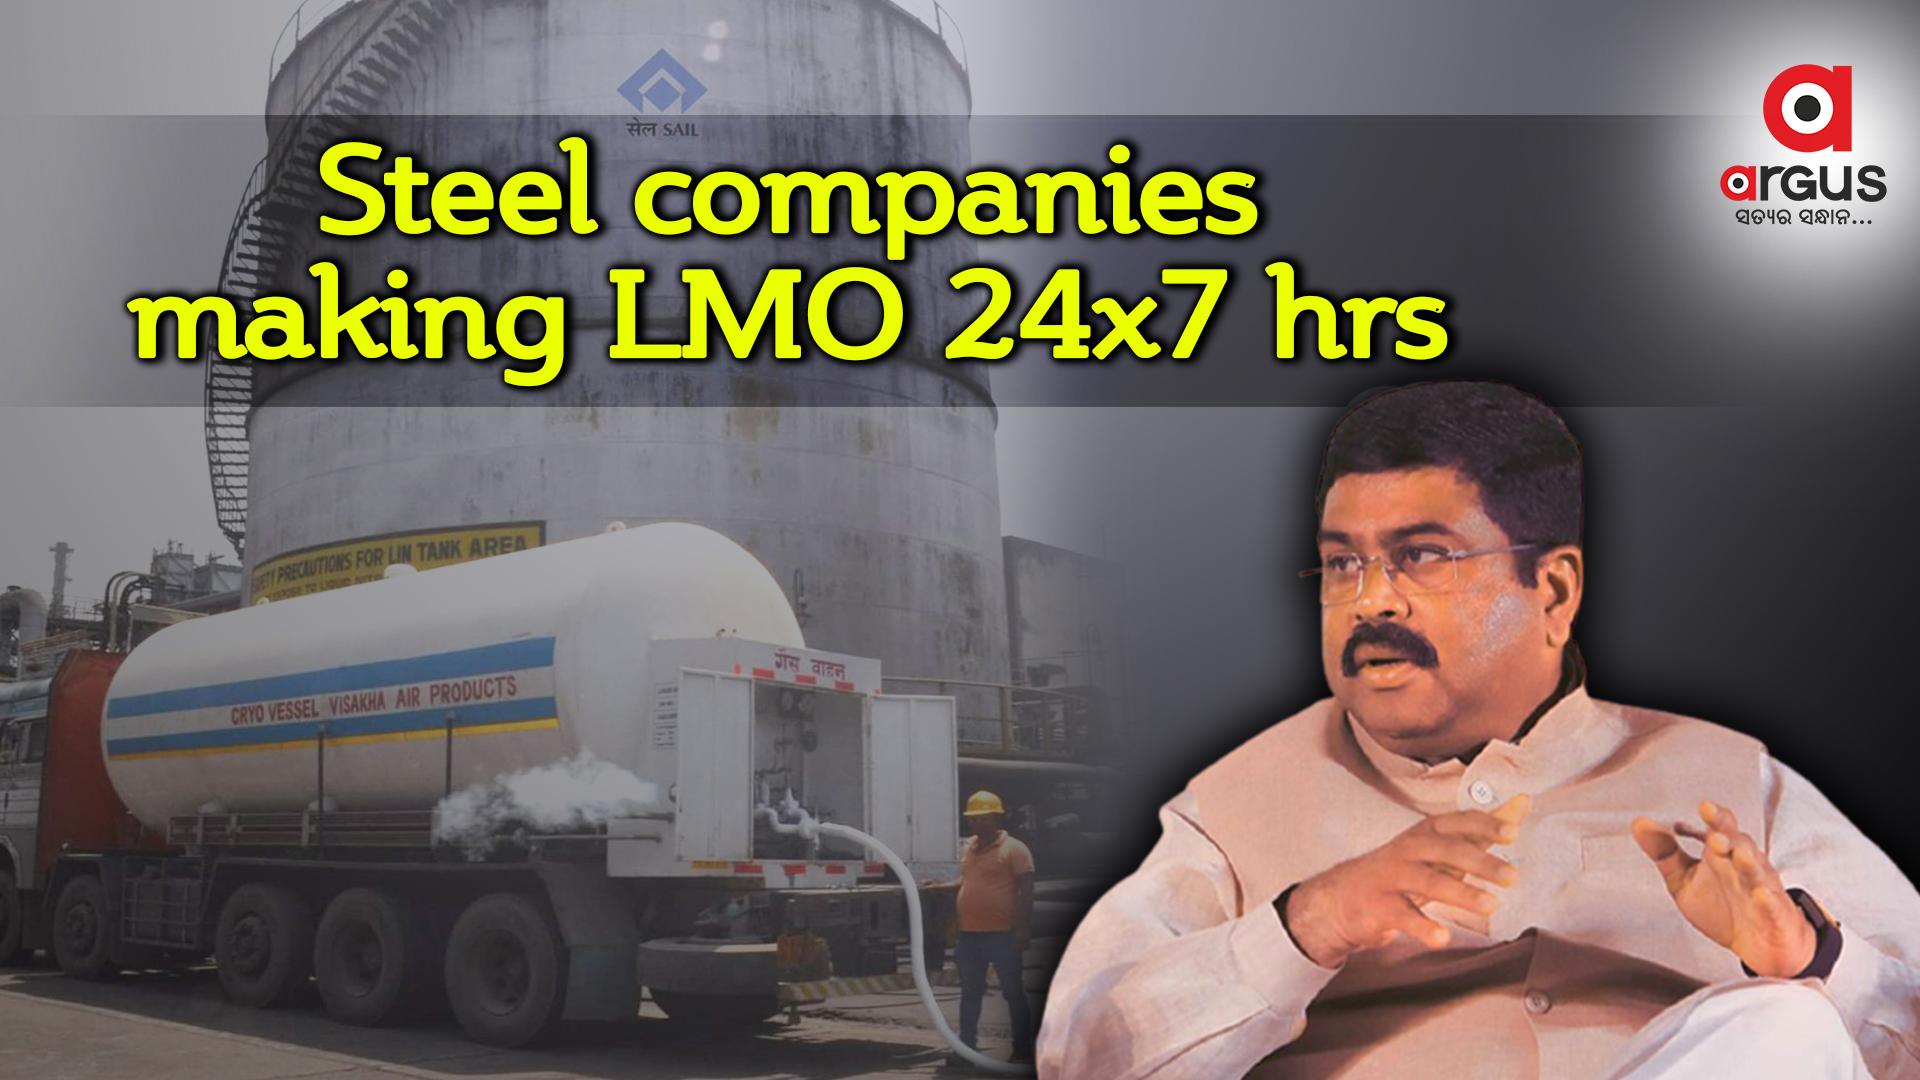 Steel companies making LMO 24x7 hrs, says Pradhan